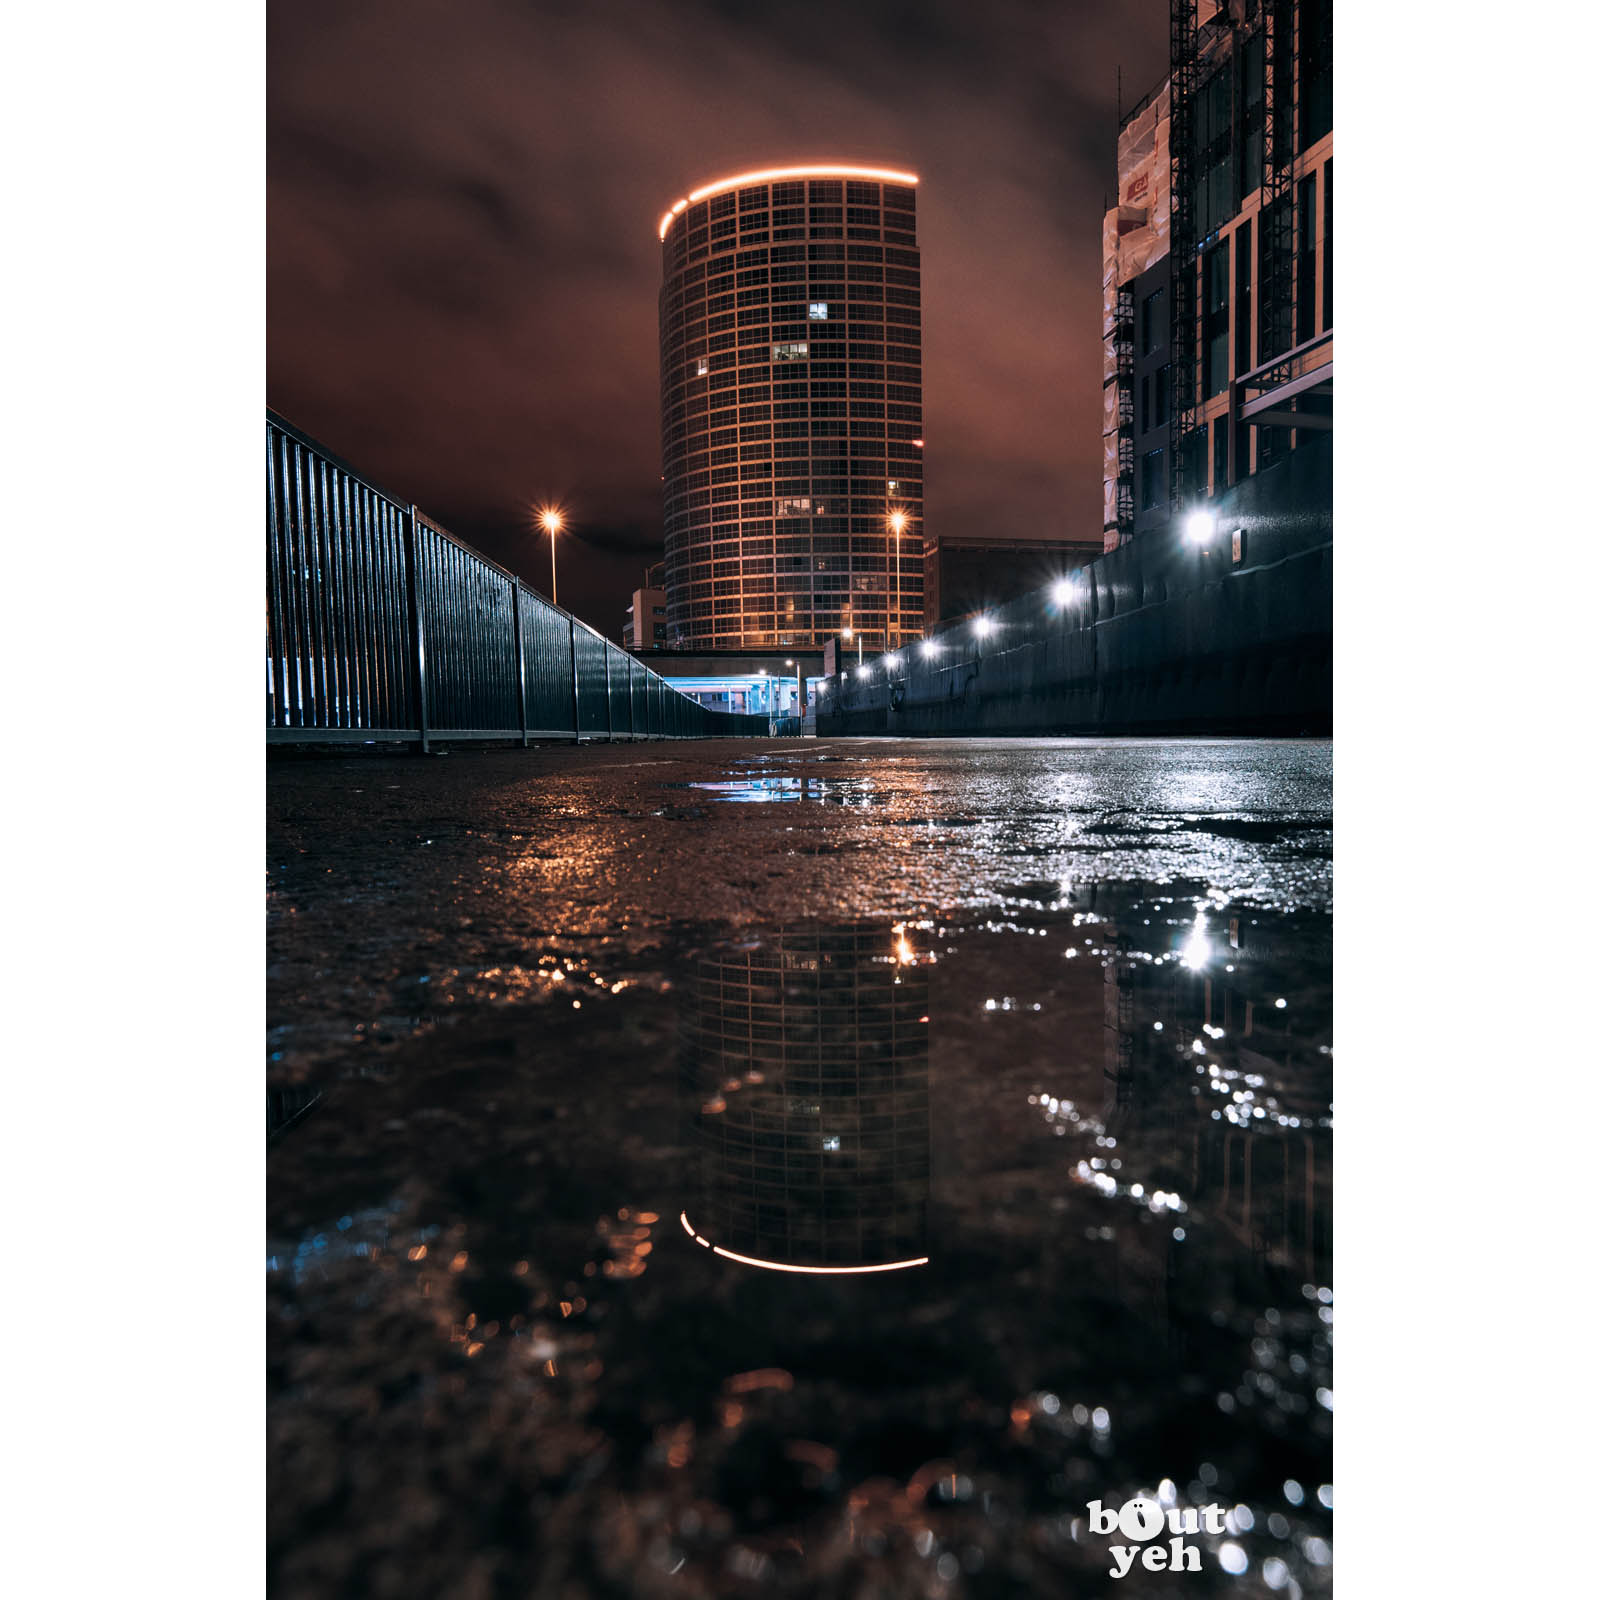 Obel Tower Belfast Northern Ireland by rskb - photographic print for sale.